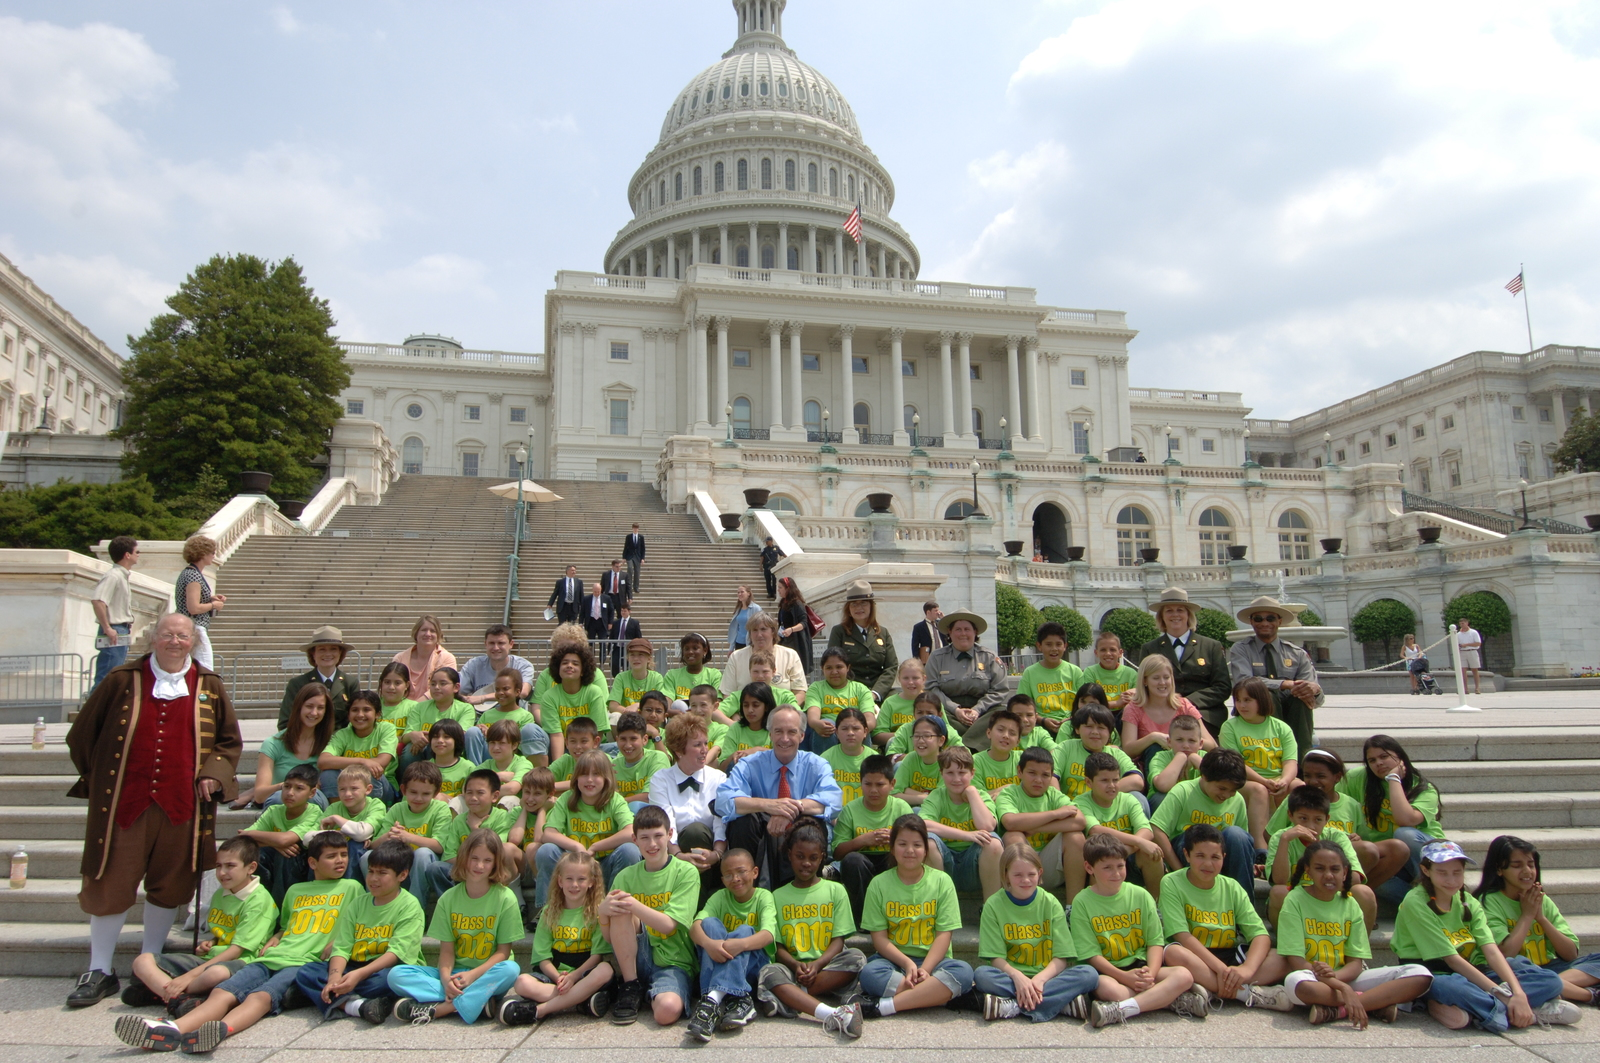 [Assignment: 48-DPA-04-24-08_SOI_K_CC_School] Secretary Dirk Kempthorne [and other officials speaking, touring, posing with the] schoolchildren who assembled for the press conference, [on the steps of the U.S. Capitol], announcing the final list of National Park Centennial Challenge projects [to be funded in 2008. The Centennial Challenge is the public-private fund matching element of the President's National Park Centennial Initiative, designed to prepare the National Park system for another century of conservation and preservation in time for the National Park Service's 100th anniversary in 2016.] [48-DPA-04-24-08_SOI_K_CC_School_DOI_2547.JPG]